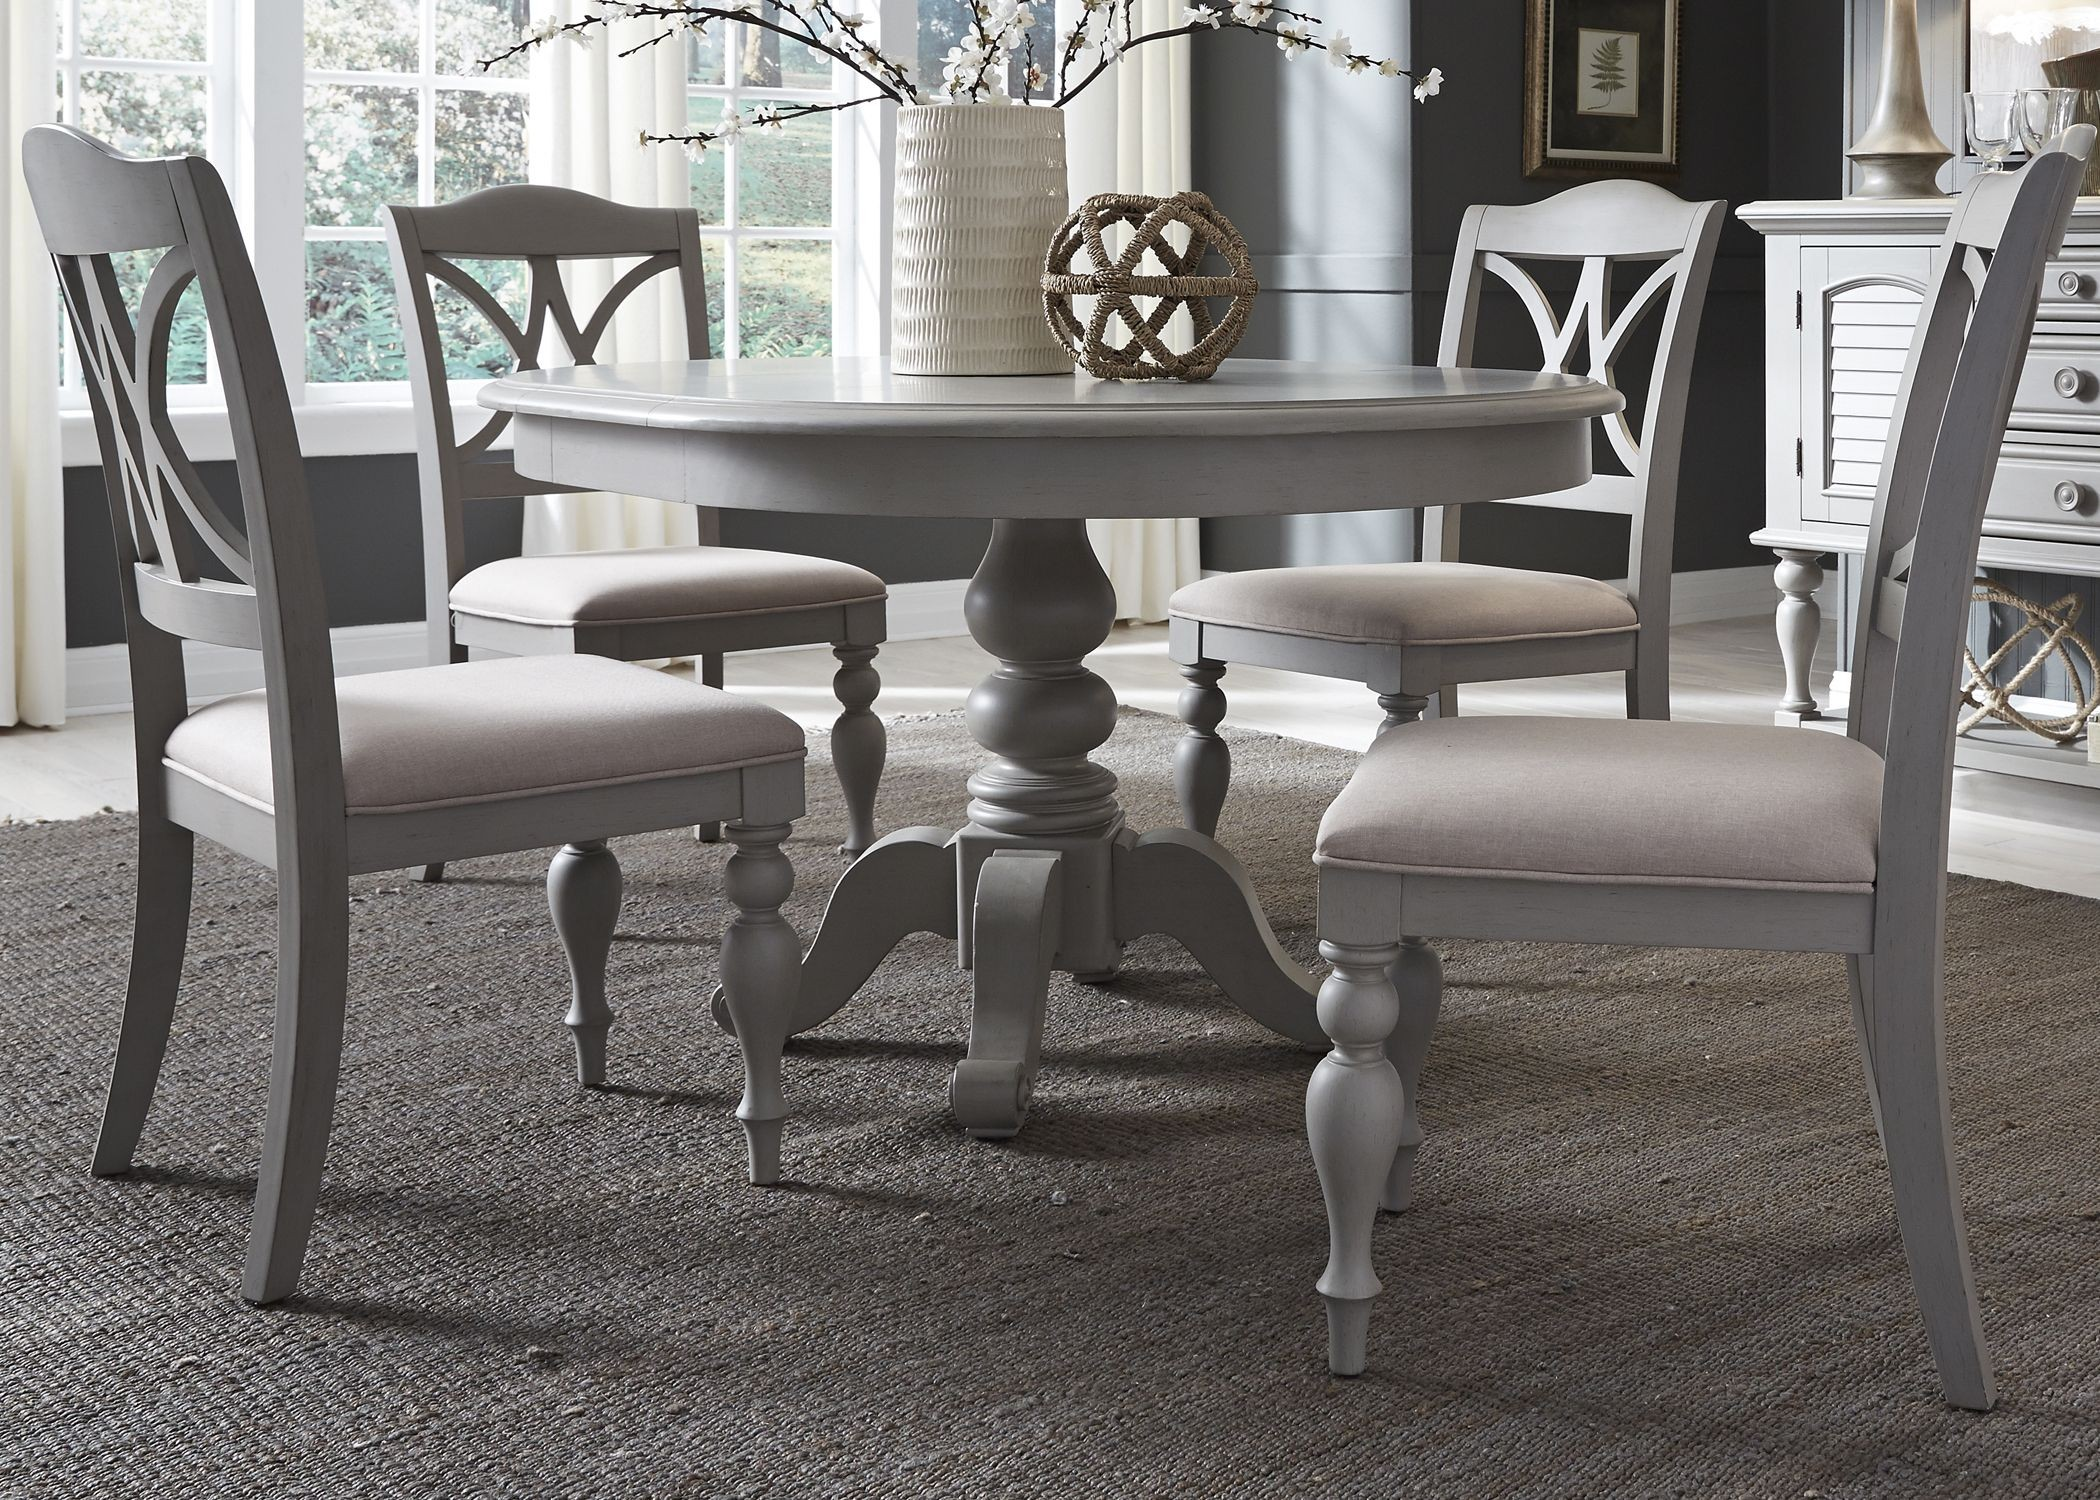 Summer House Dove Grey Round Dining Table 407 CD PDS Liberty : 407 cd 5ros2 from colemanfurniture.com size 2100 x 1500 jpeg 910kB